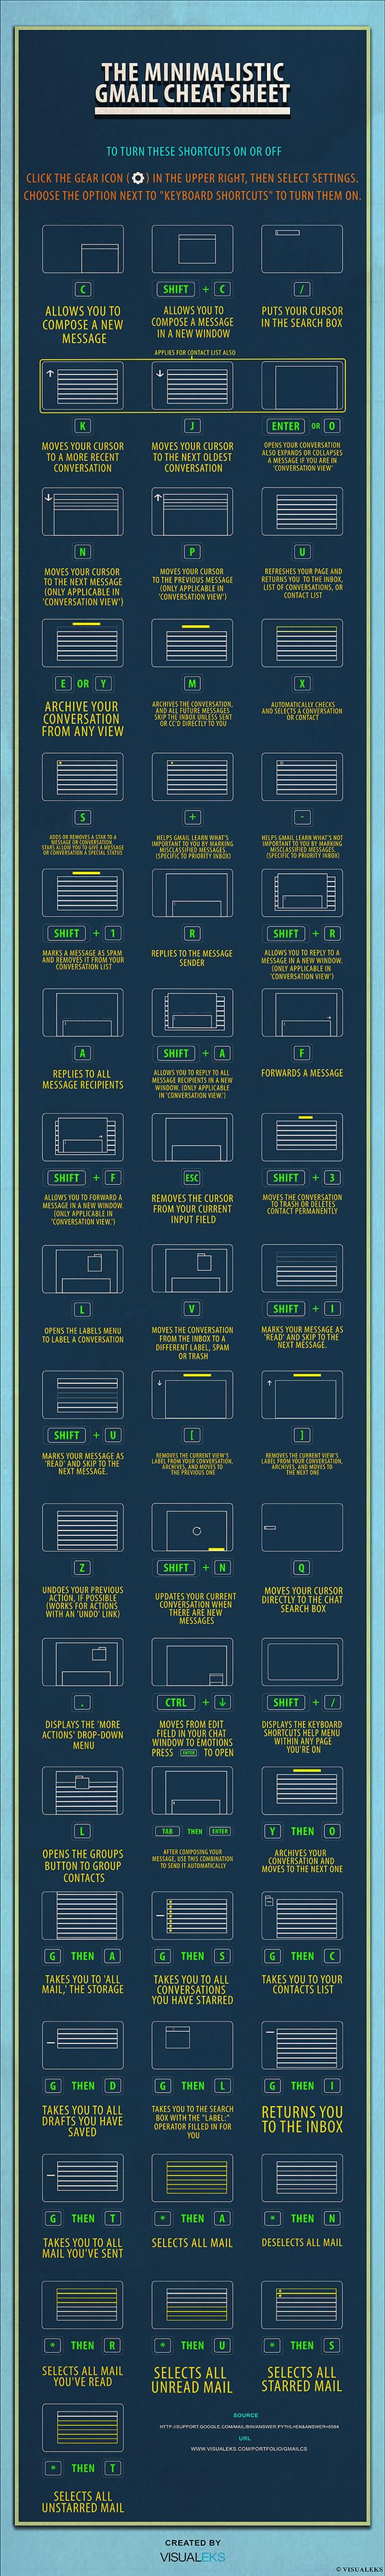 Gmail Infographic: Shortcuts, Tips And Tricks To Help You Handle Your Messages